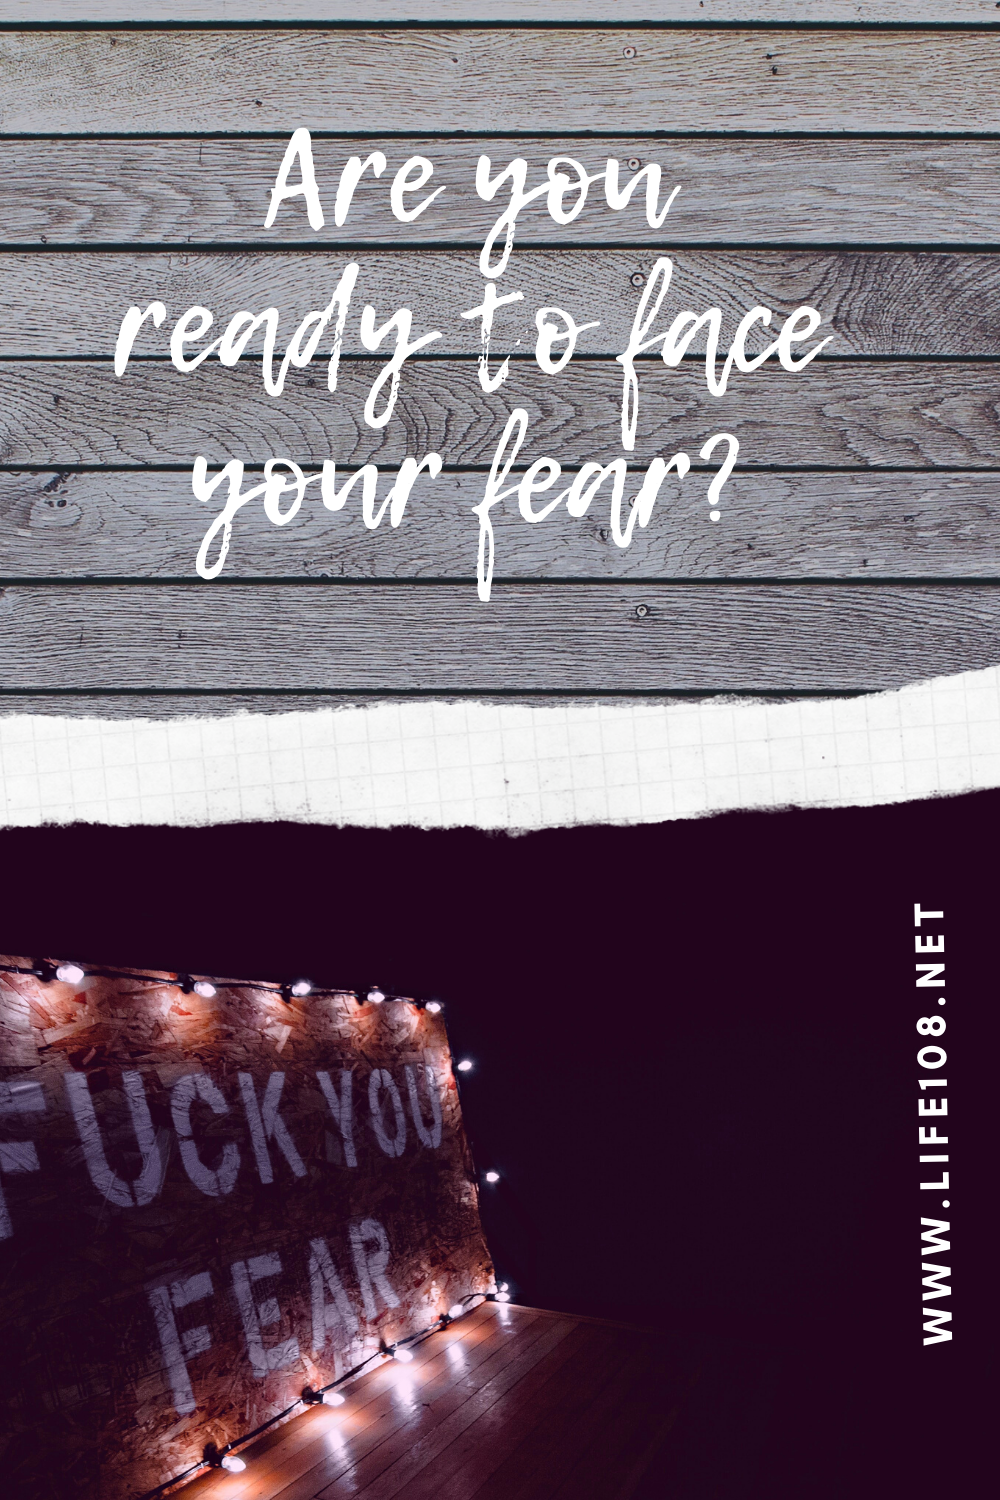 Are you ready to face your fear?